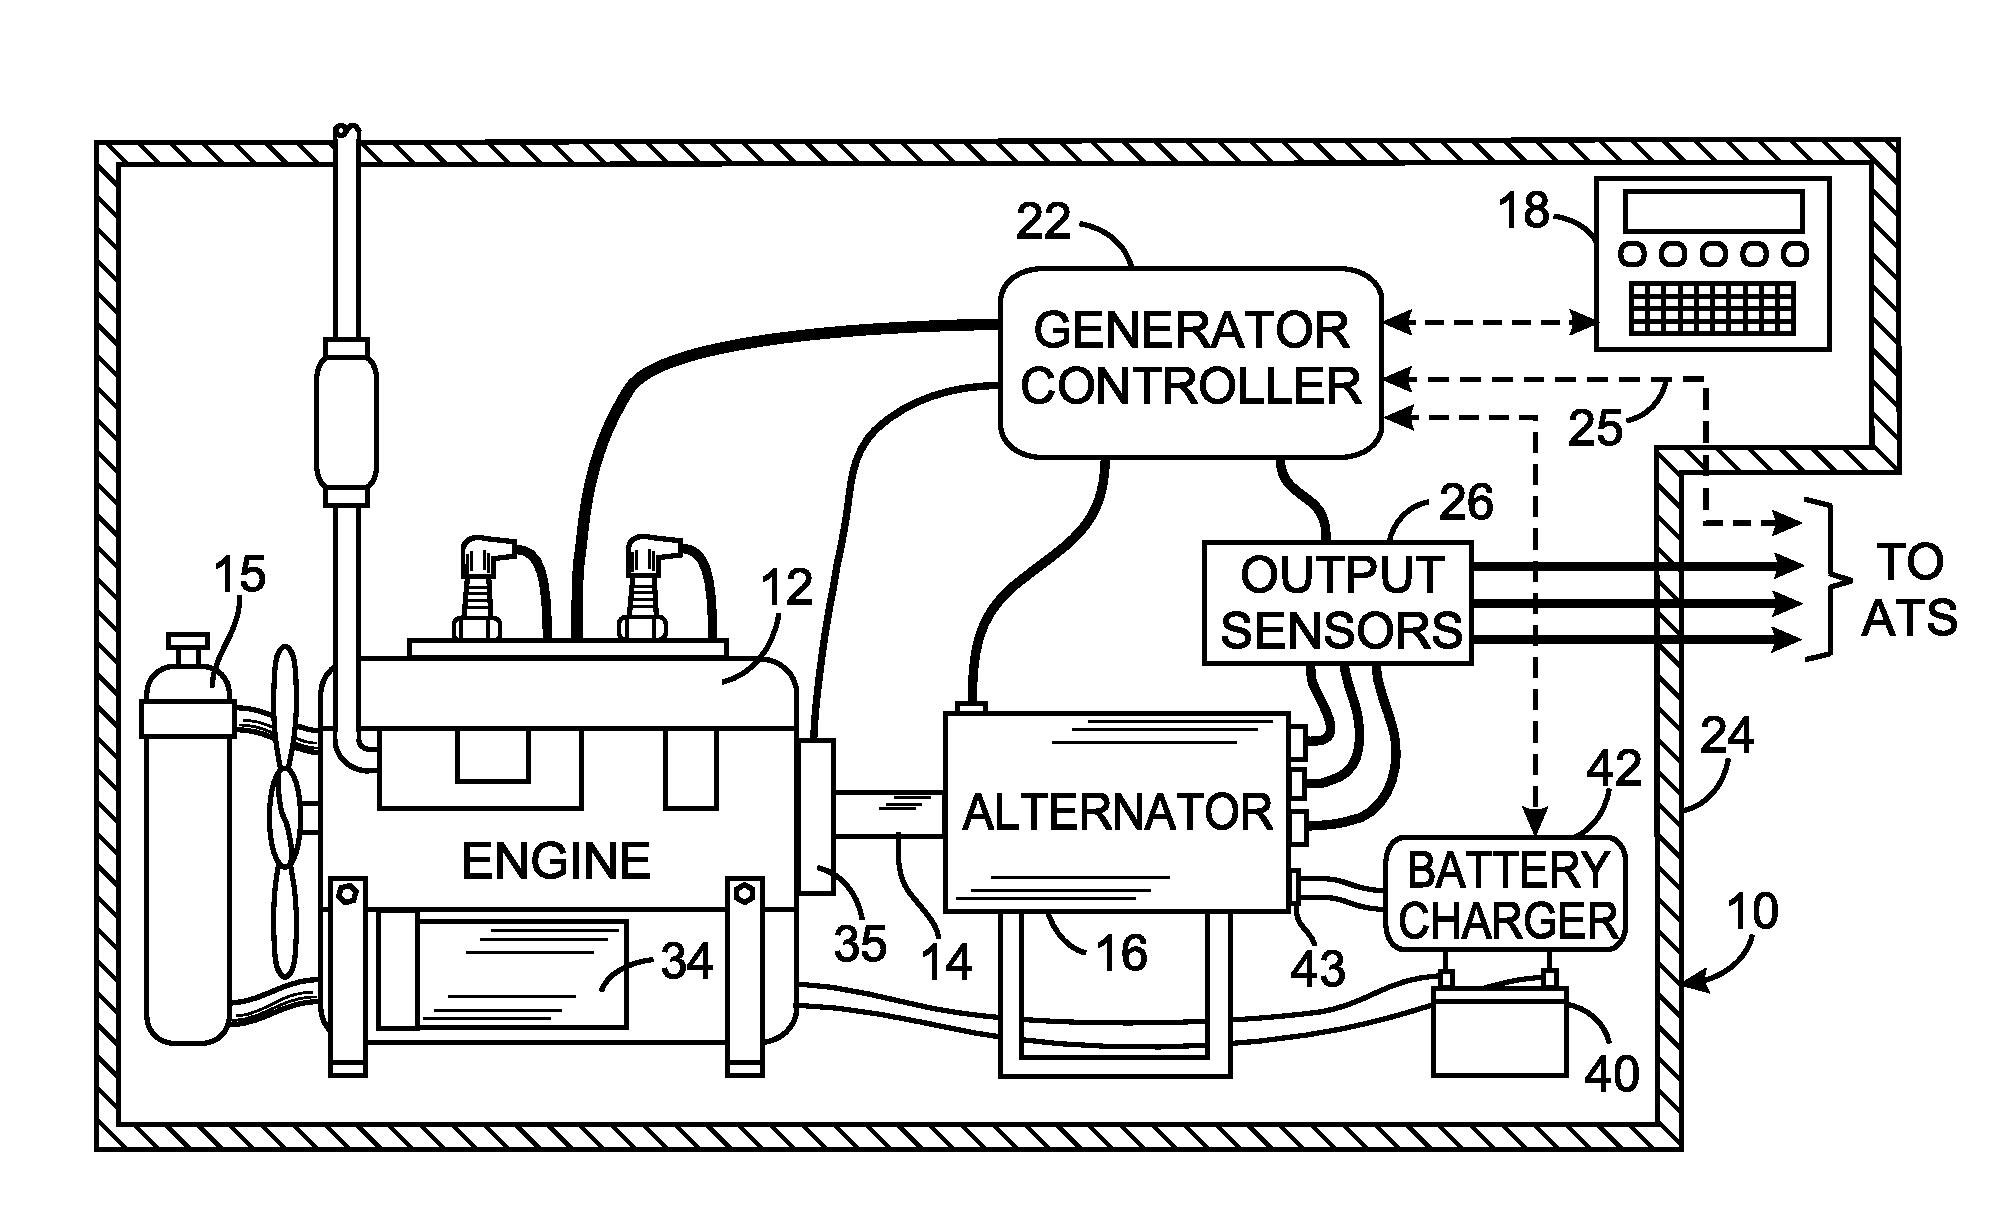 patent us20110172966 - diagnostic method for an engine-generator set